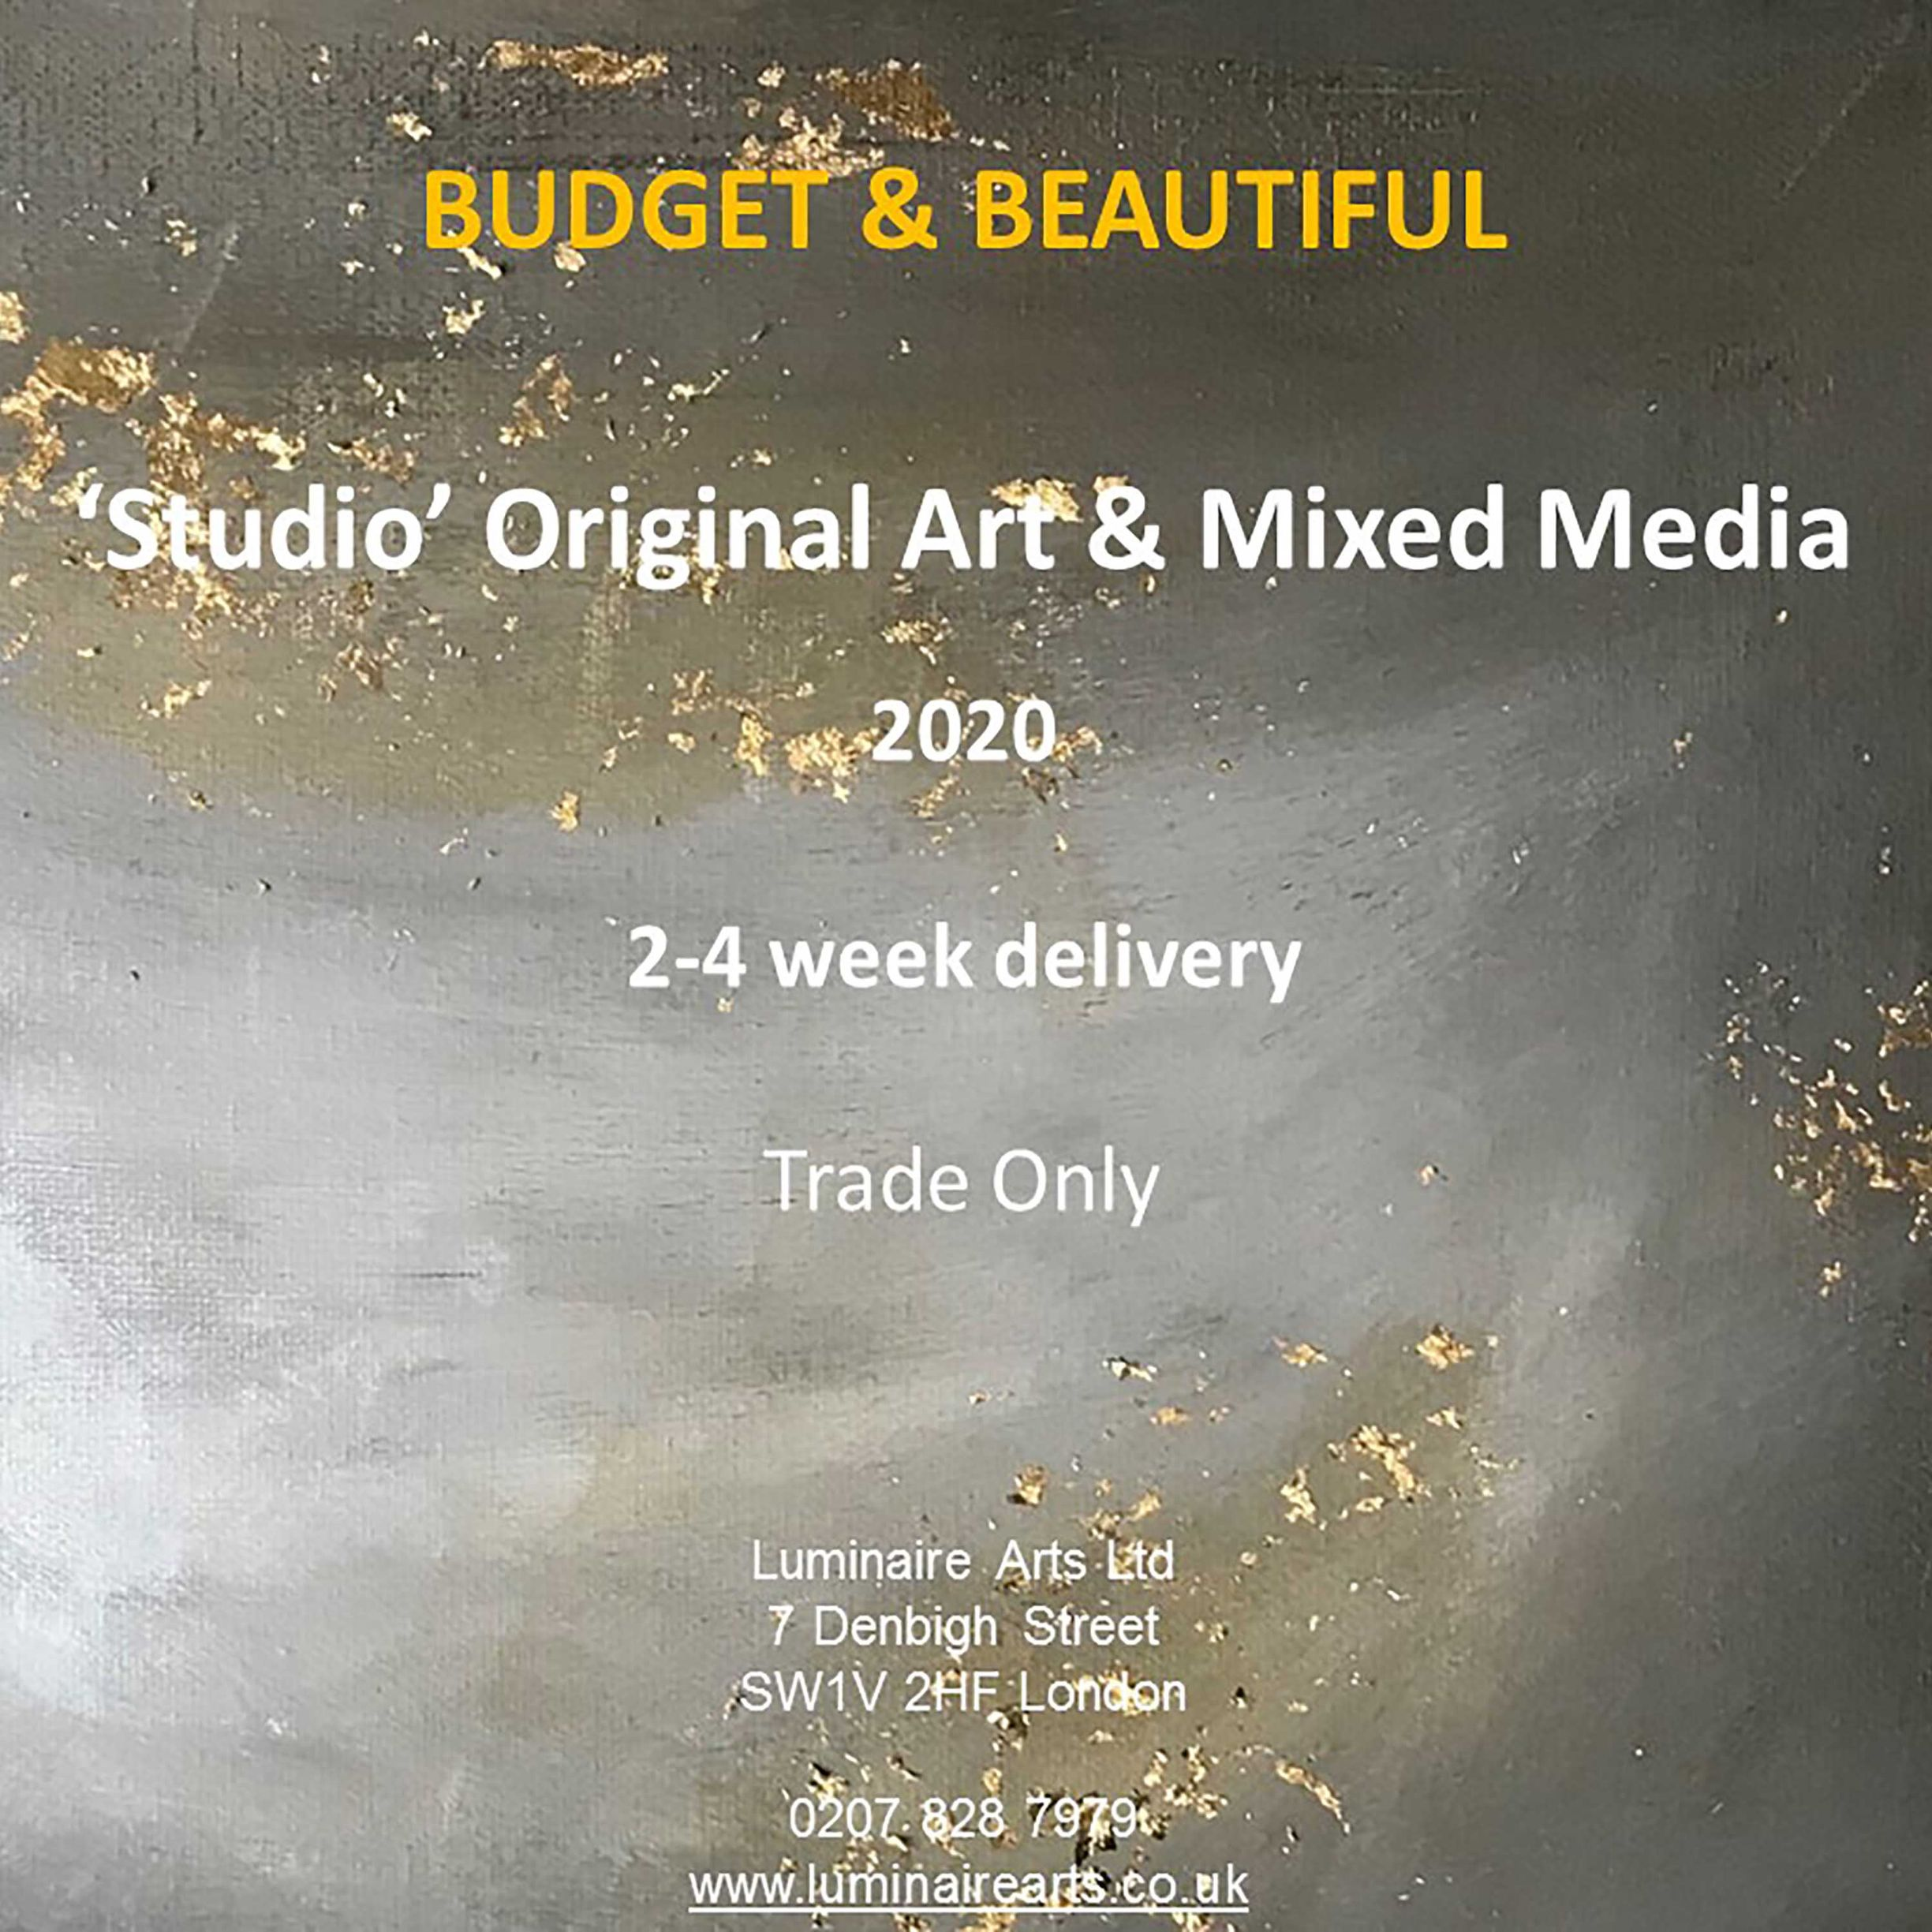 Budget Original Art & Mixed Media